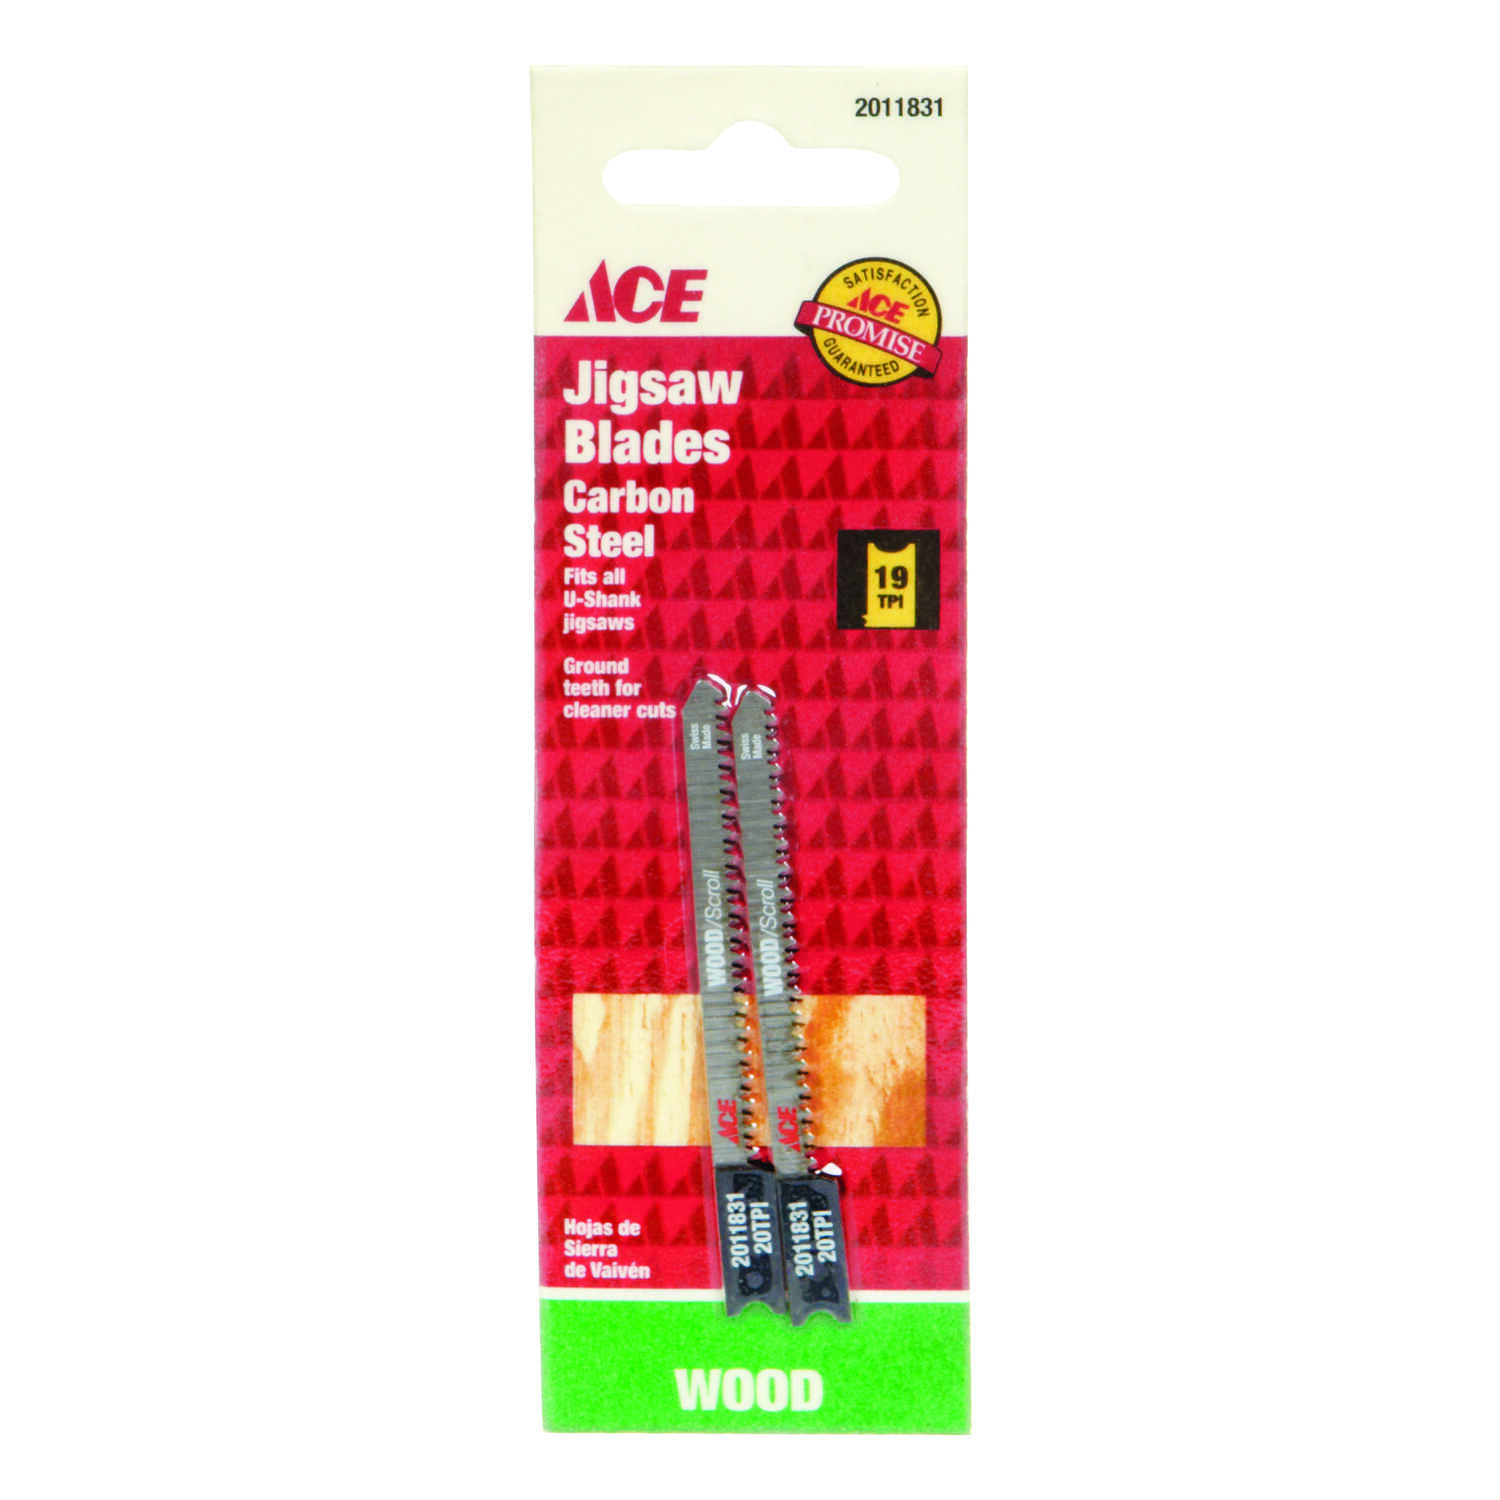 Ace  2-3/4 in. Carbon Steel  Jig Saw Blade  19 TPI 2 pk U-Shank